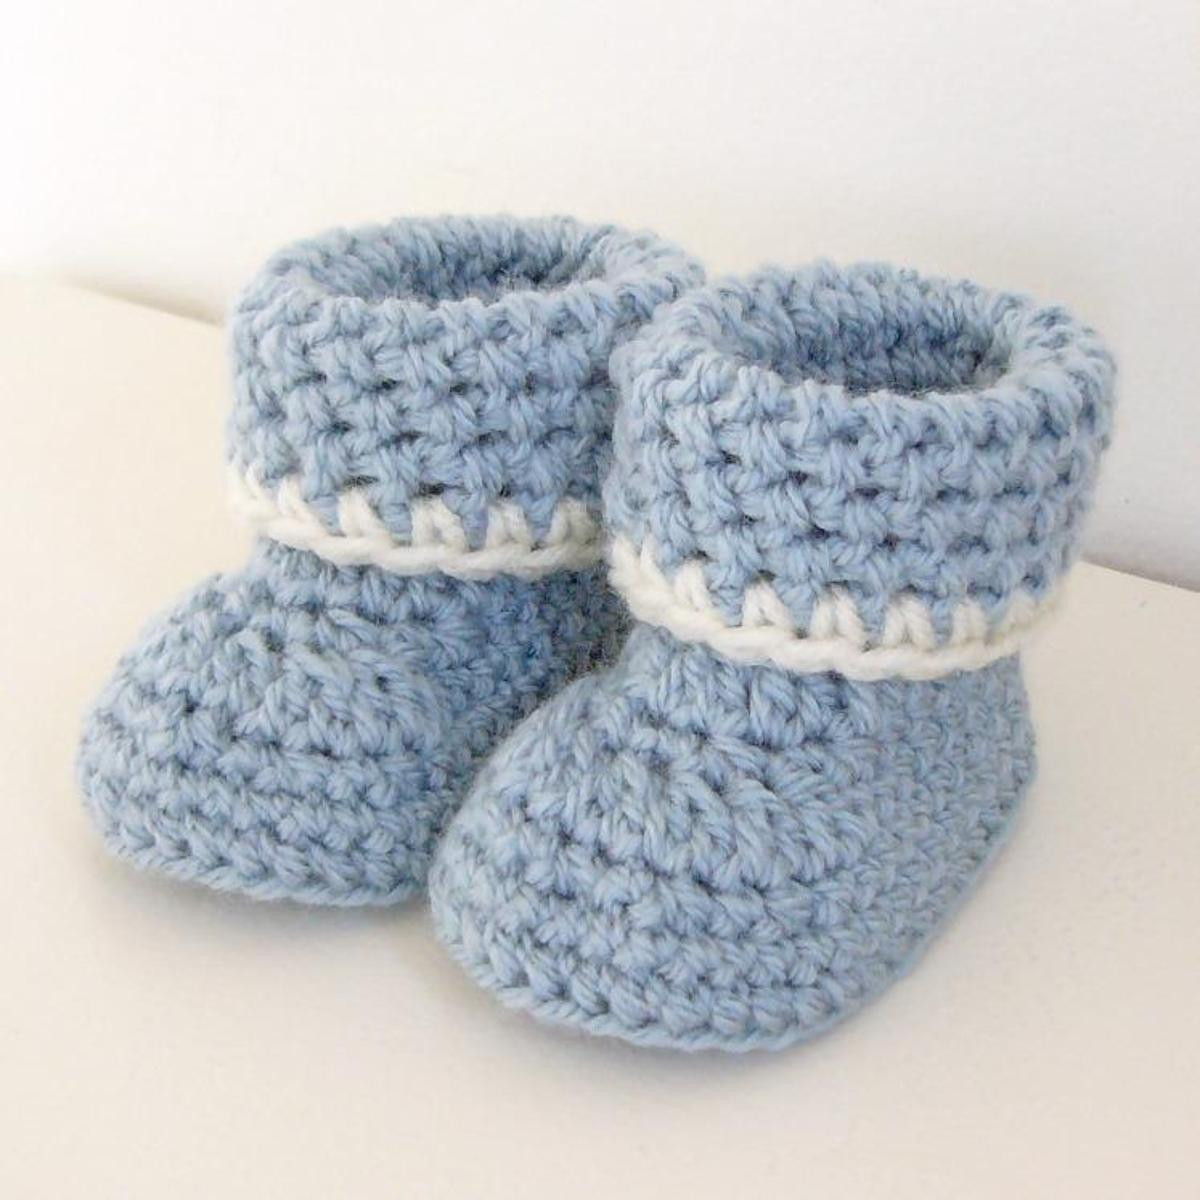 Unique Cozy Cuffs Crochet Baby Booties Pattern Crochet Newborn Baby Booties Of Incredible 49 Models Crochet Newborn Baby Booties